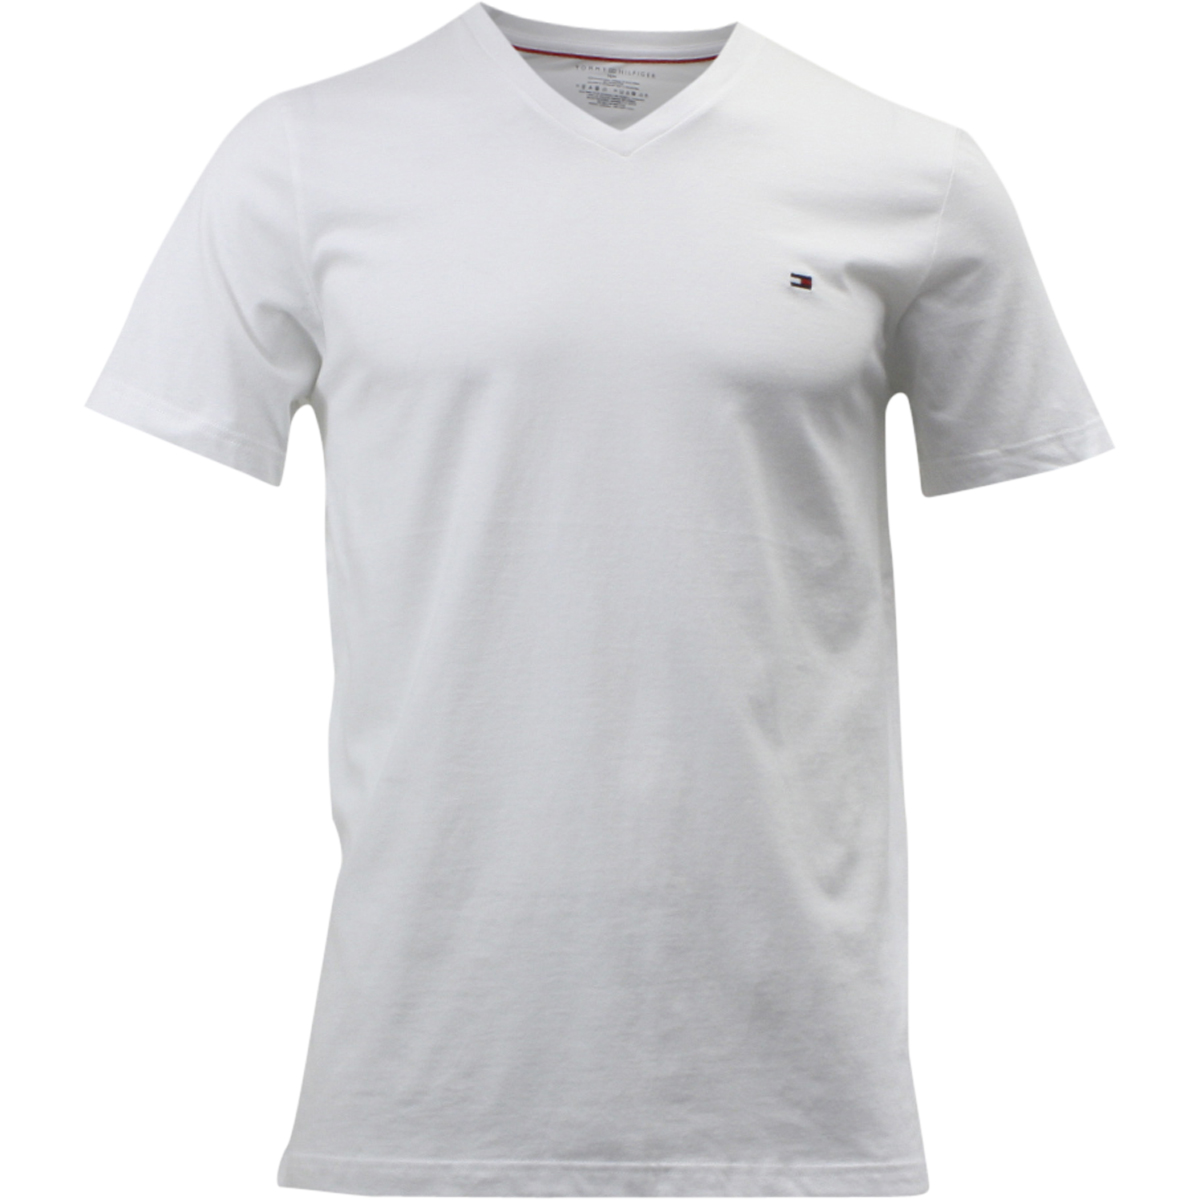 c1b265737 Tommy Hilfiger Men's Core Flag Short Sleeve V-Neck White Cotton T ...